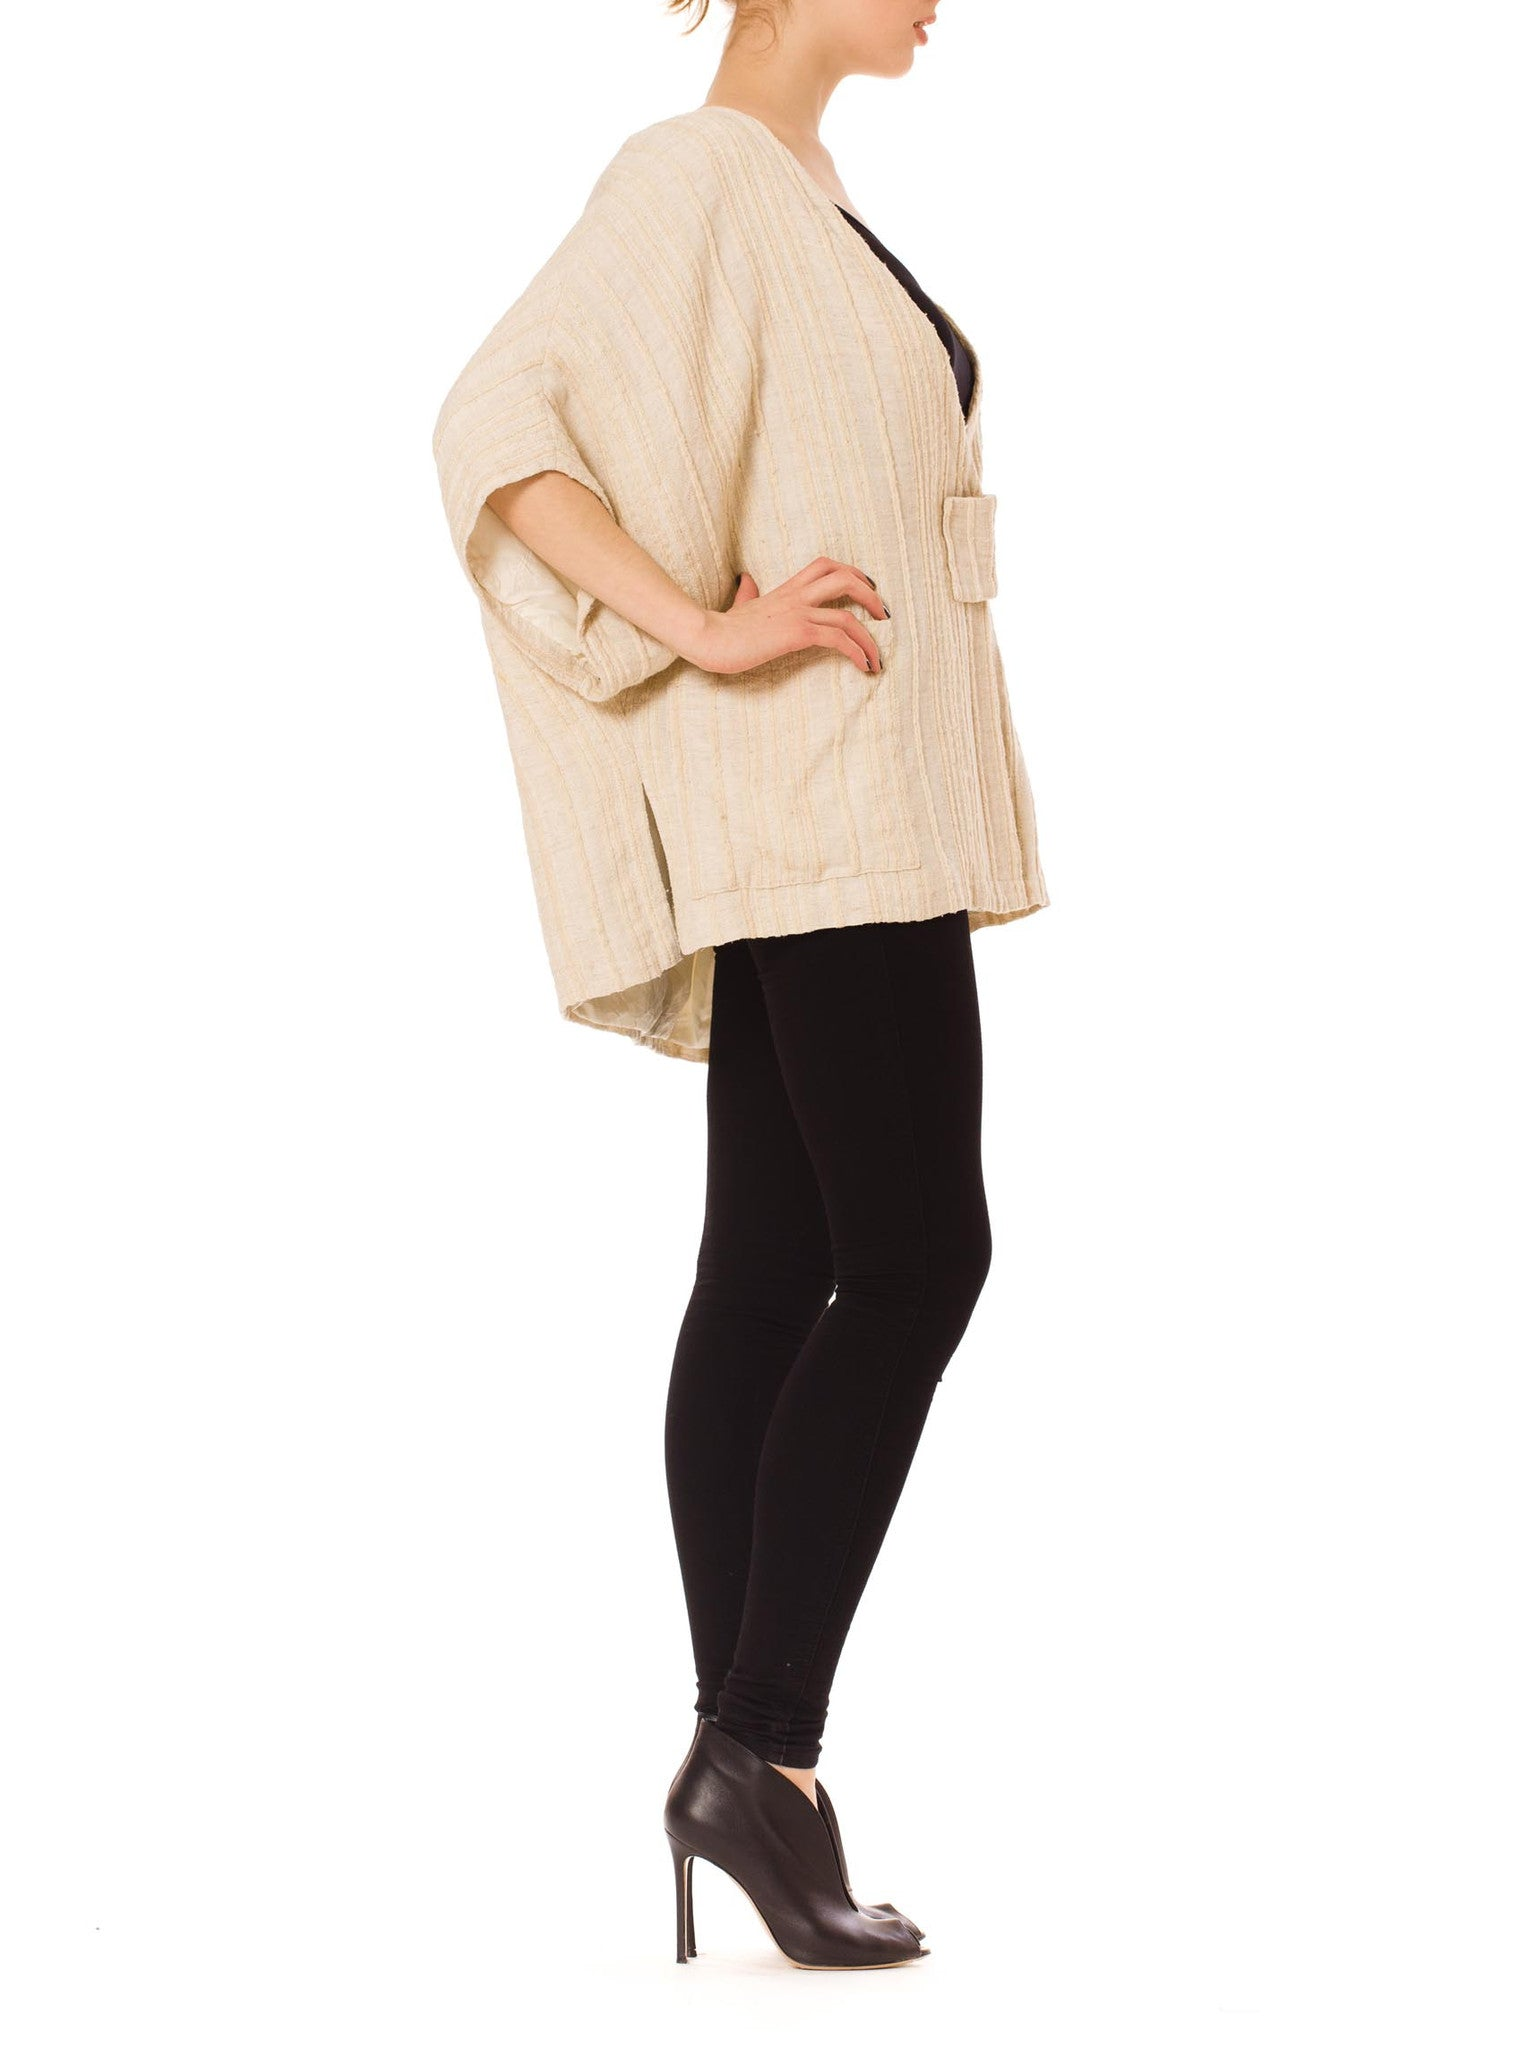 1980s Issey Miyake Style Wool And Linen Origami Jacket